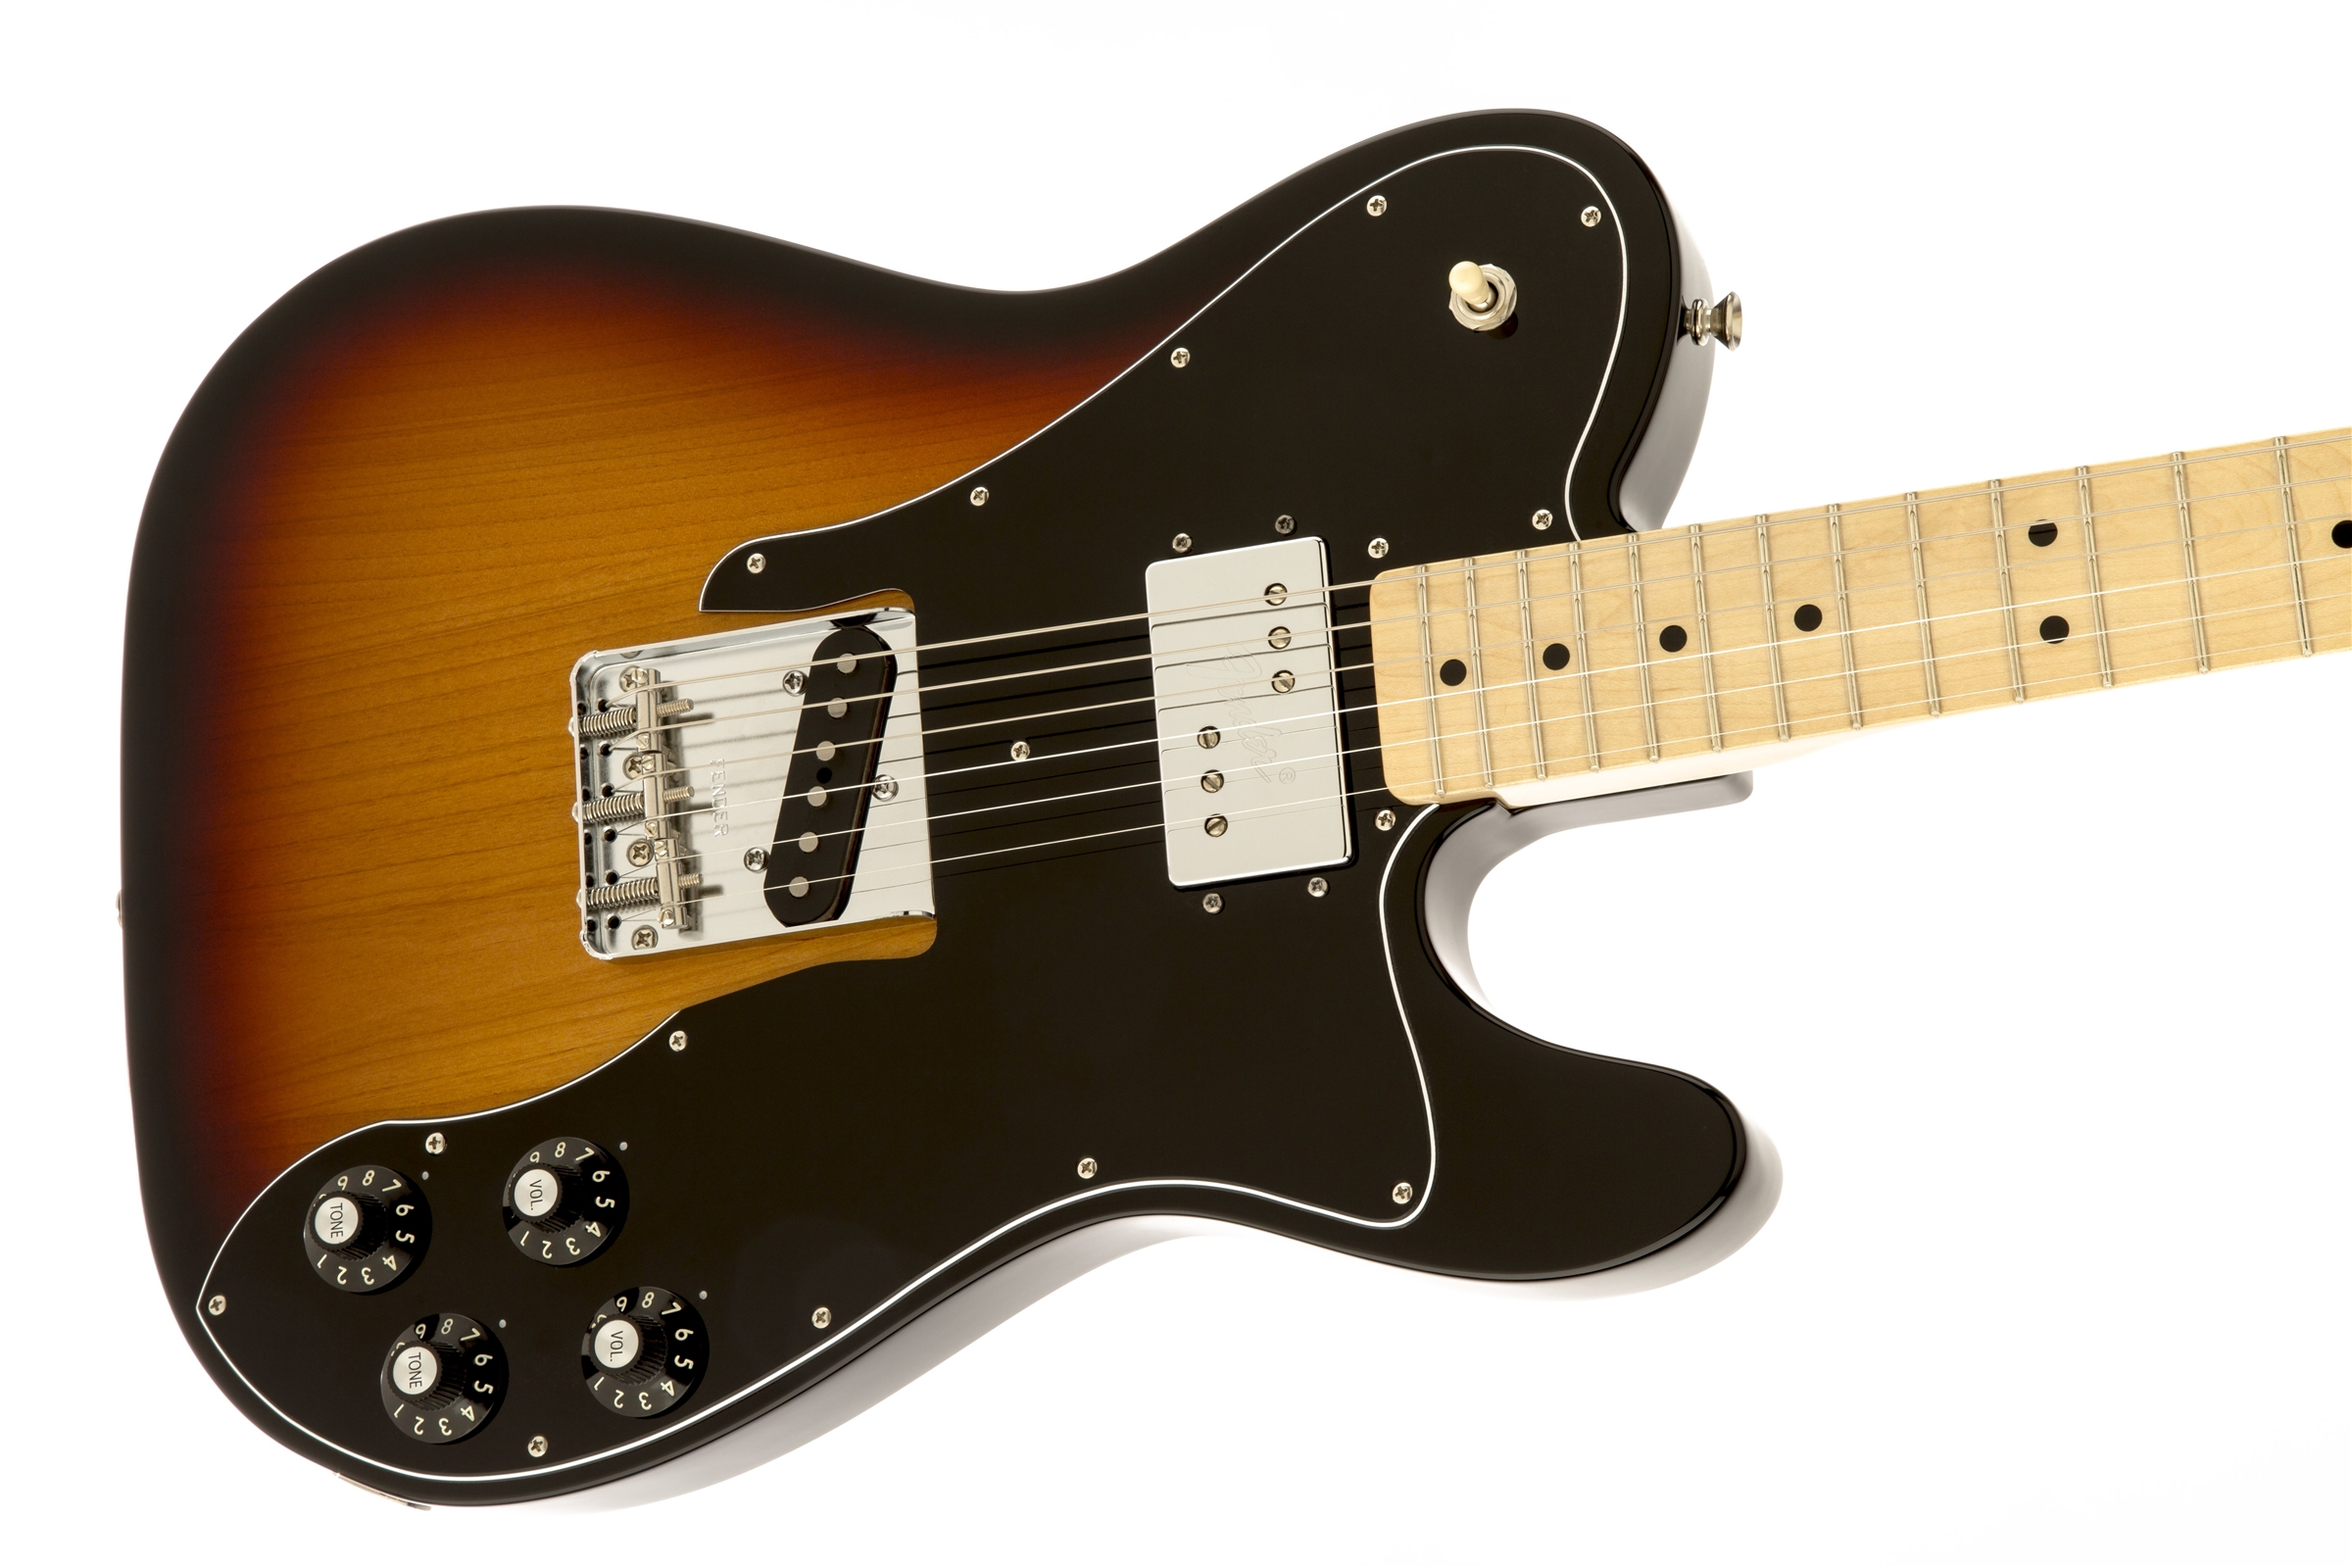 0137502300_gtr_cntbdyright_001_nr classic series '72 telecaster� custom fender electric guitars  at gsmportal.co